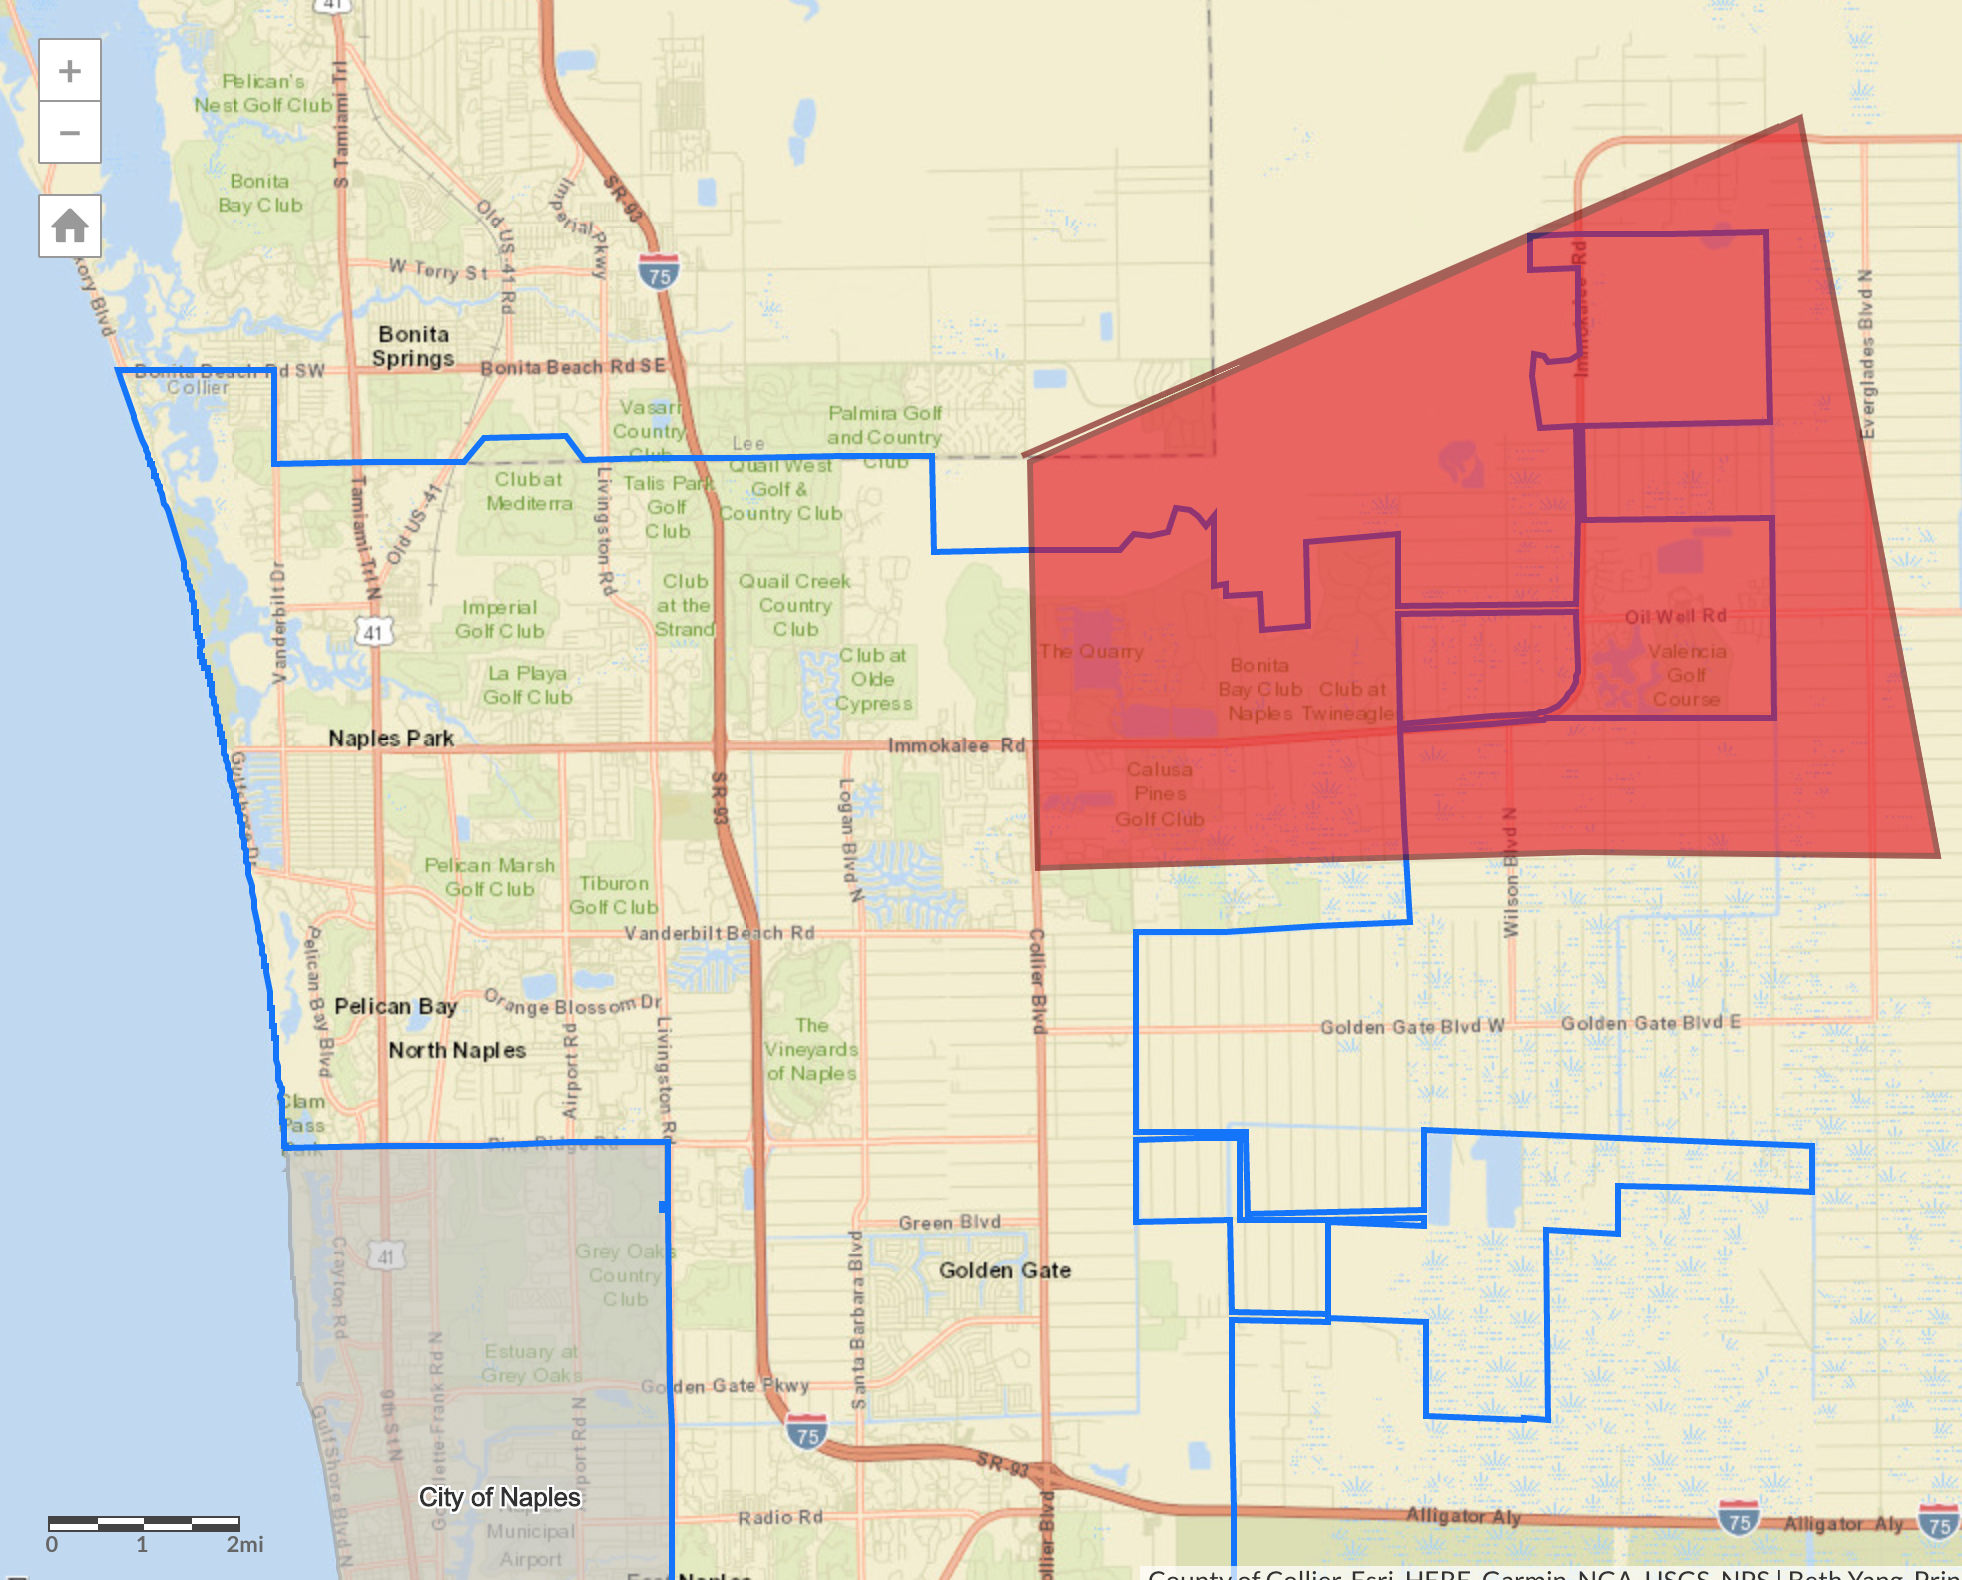 A precautionary boil water order was lifted Monday, April 29, 2019, for the area highlighted in red in Collier County.